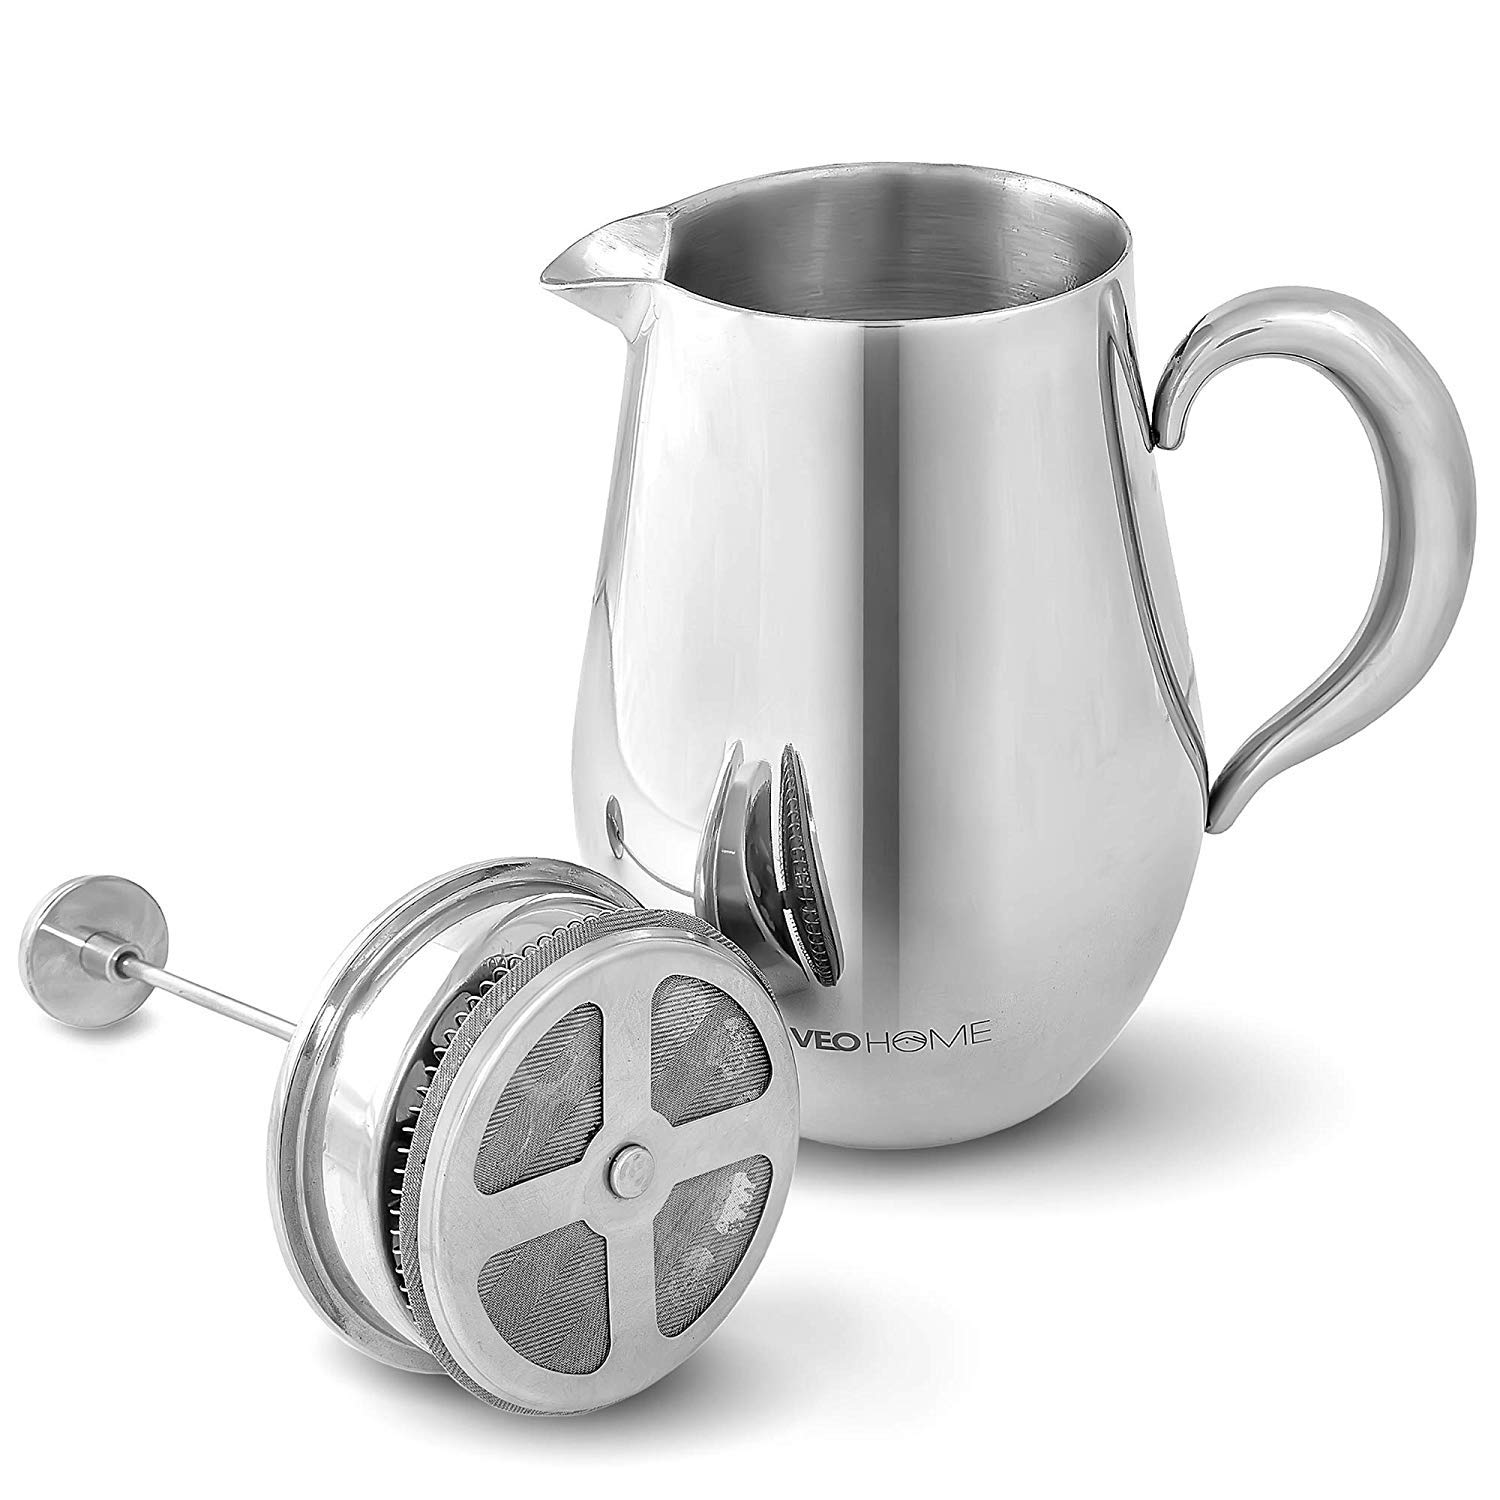 Cafetiere French Press Coffee Maker by VeoHome -Stainless steel Unbreakable and keeps coffee hotter for a long time thanks to its double wall (1 Liter) by VeoHome